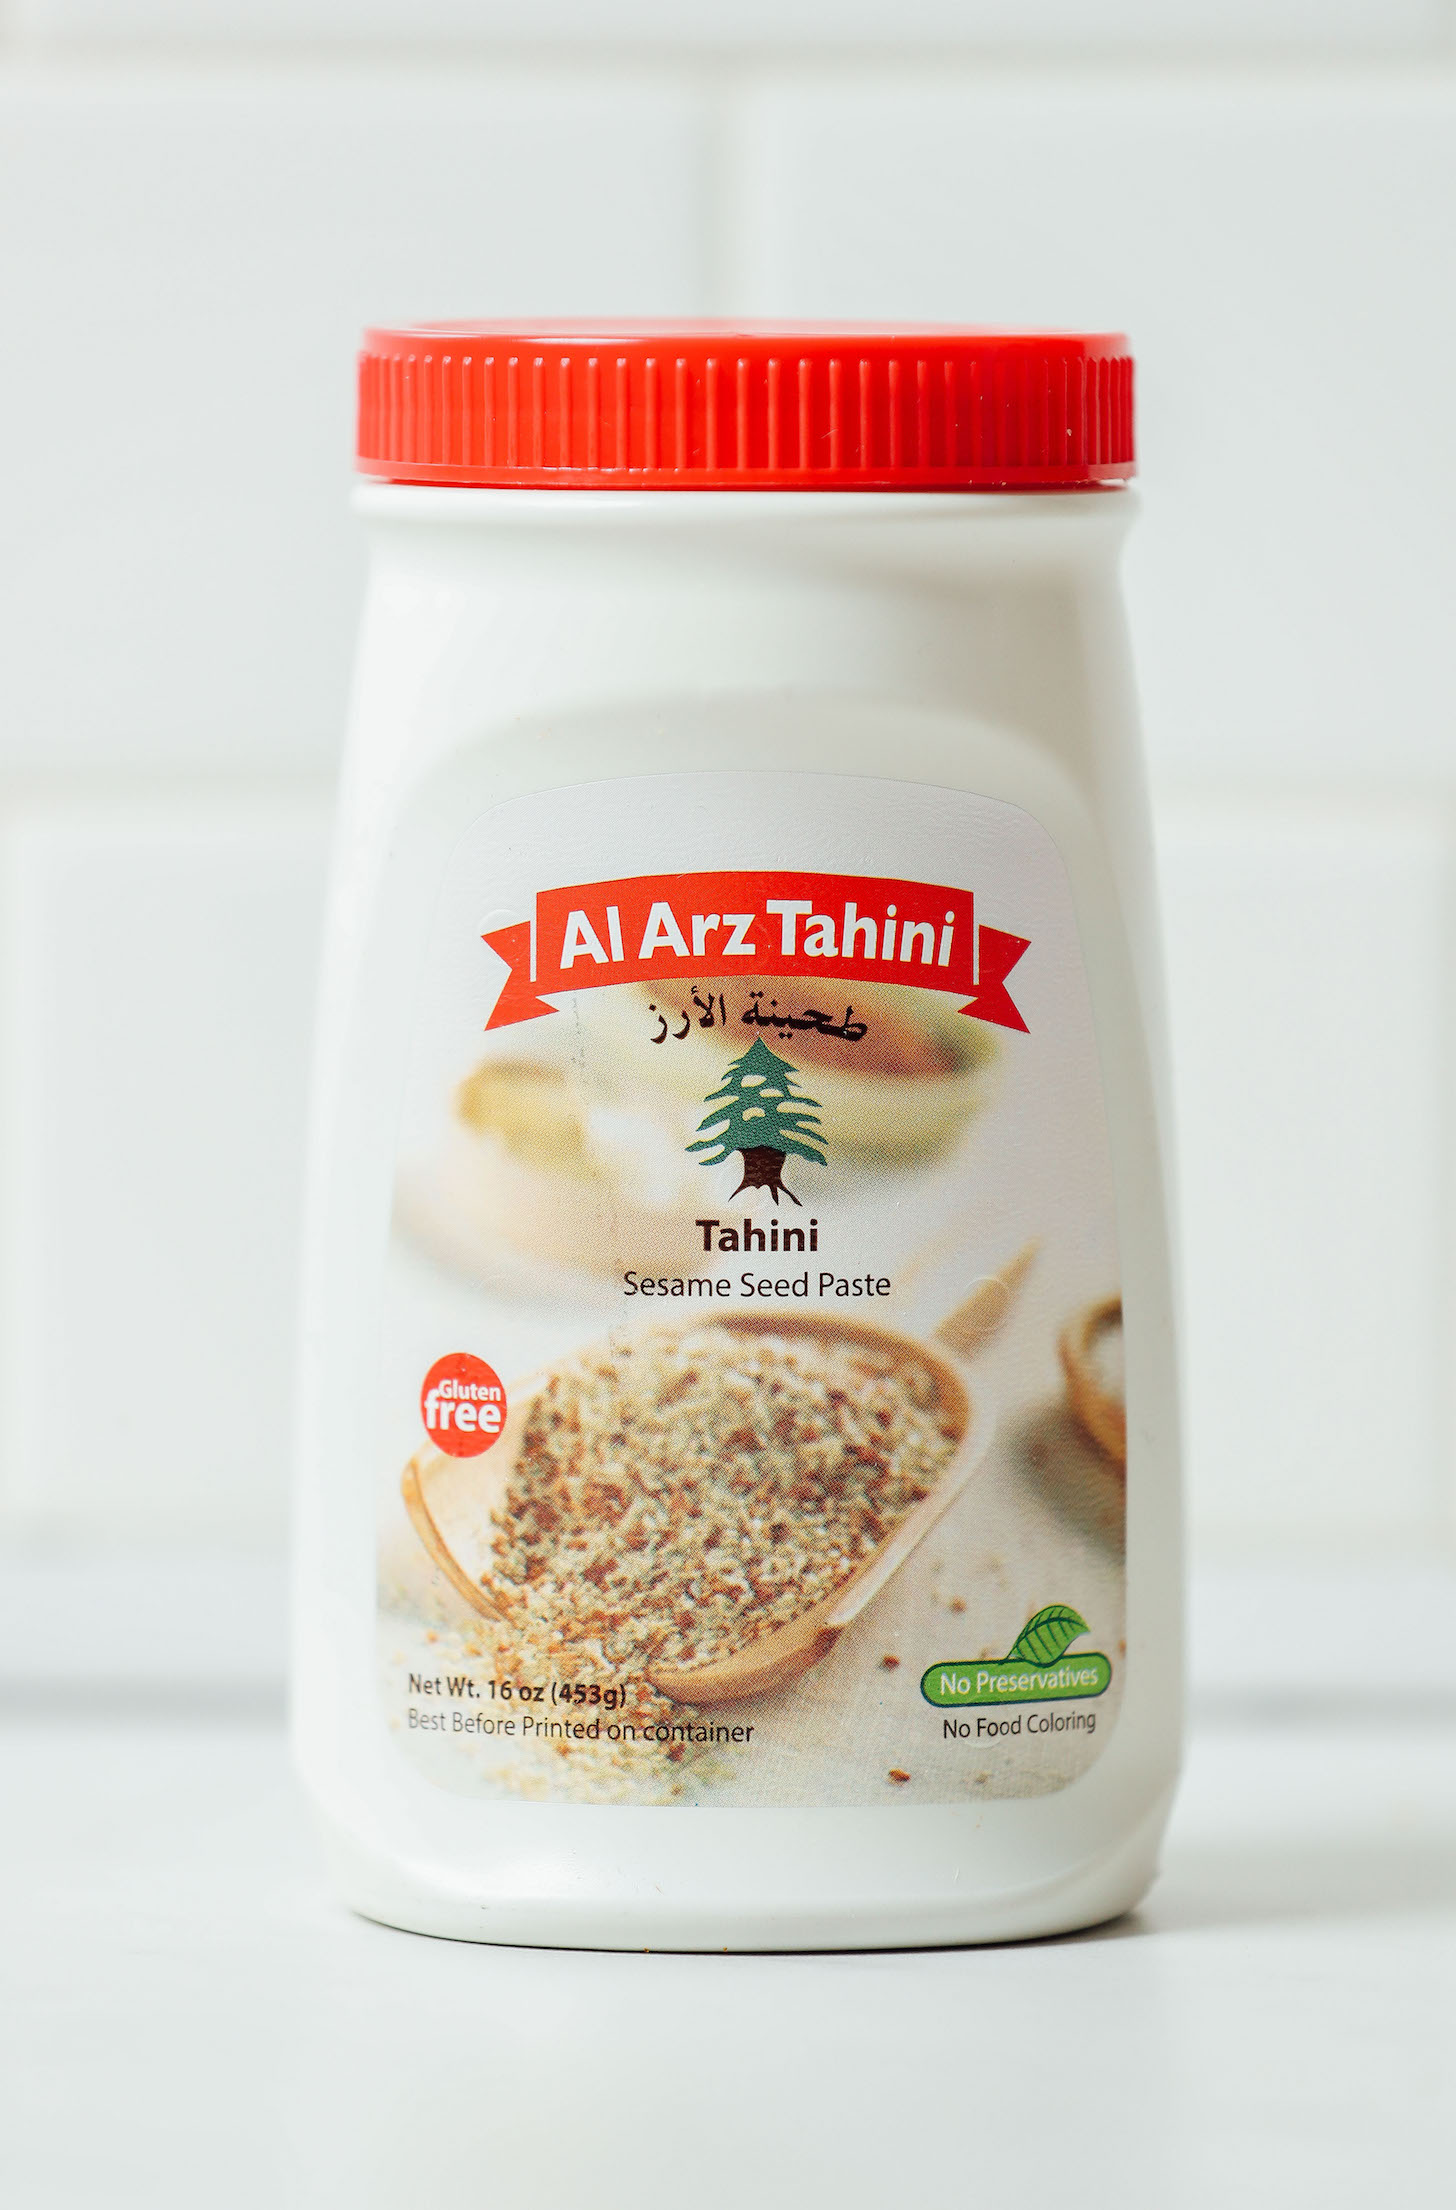 Jar of Al Arz Tahini for our unsponsored review of tahini butters